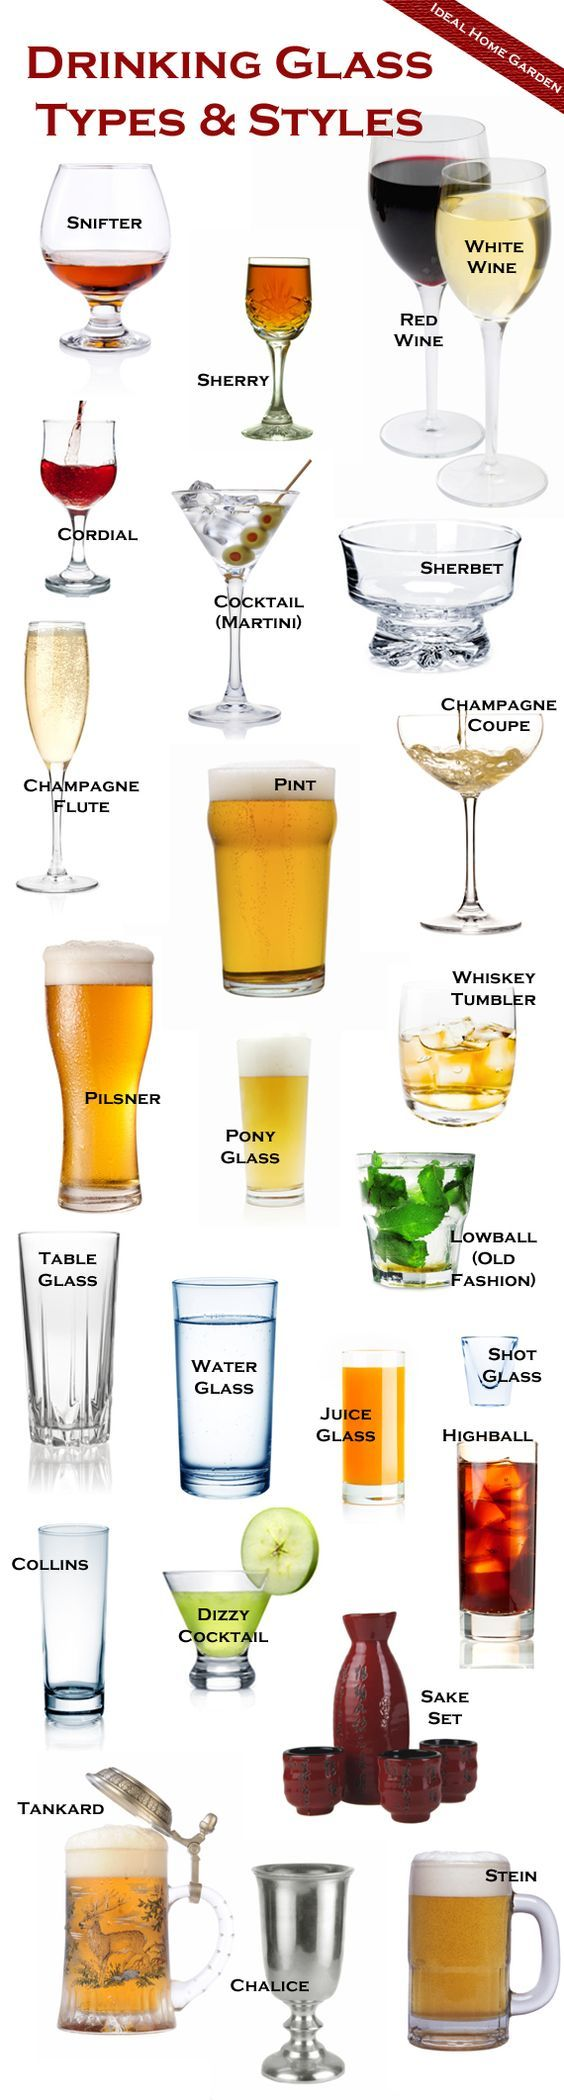 The different types of drinking glasses, and explanations ...